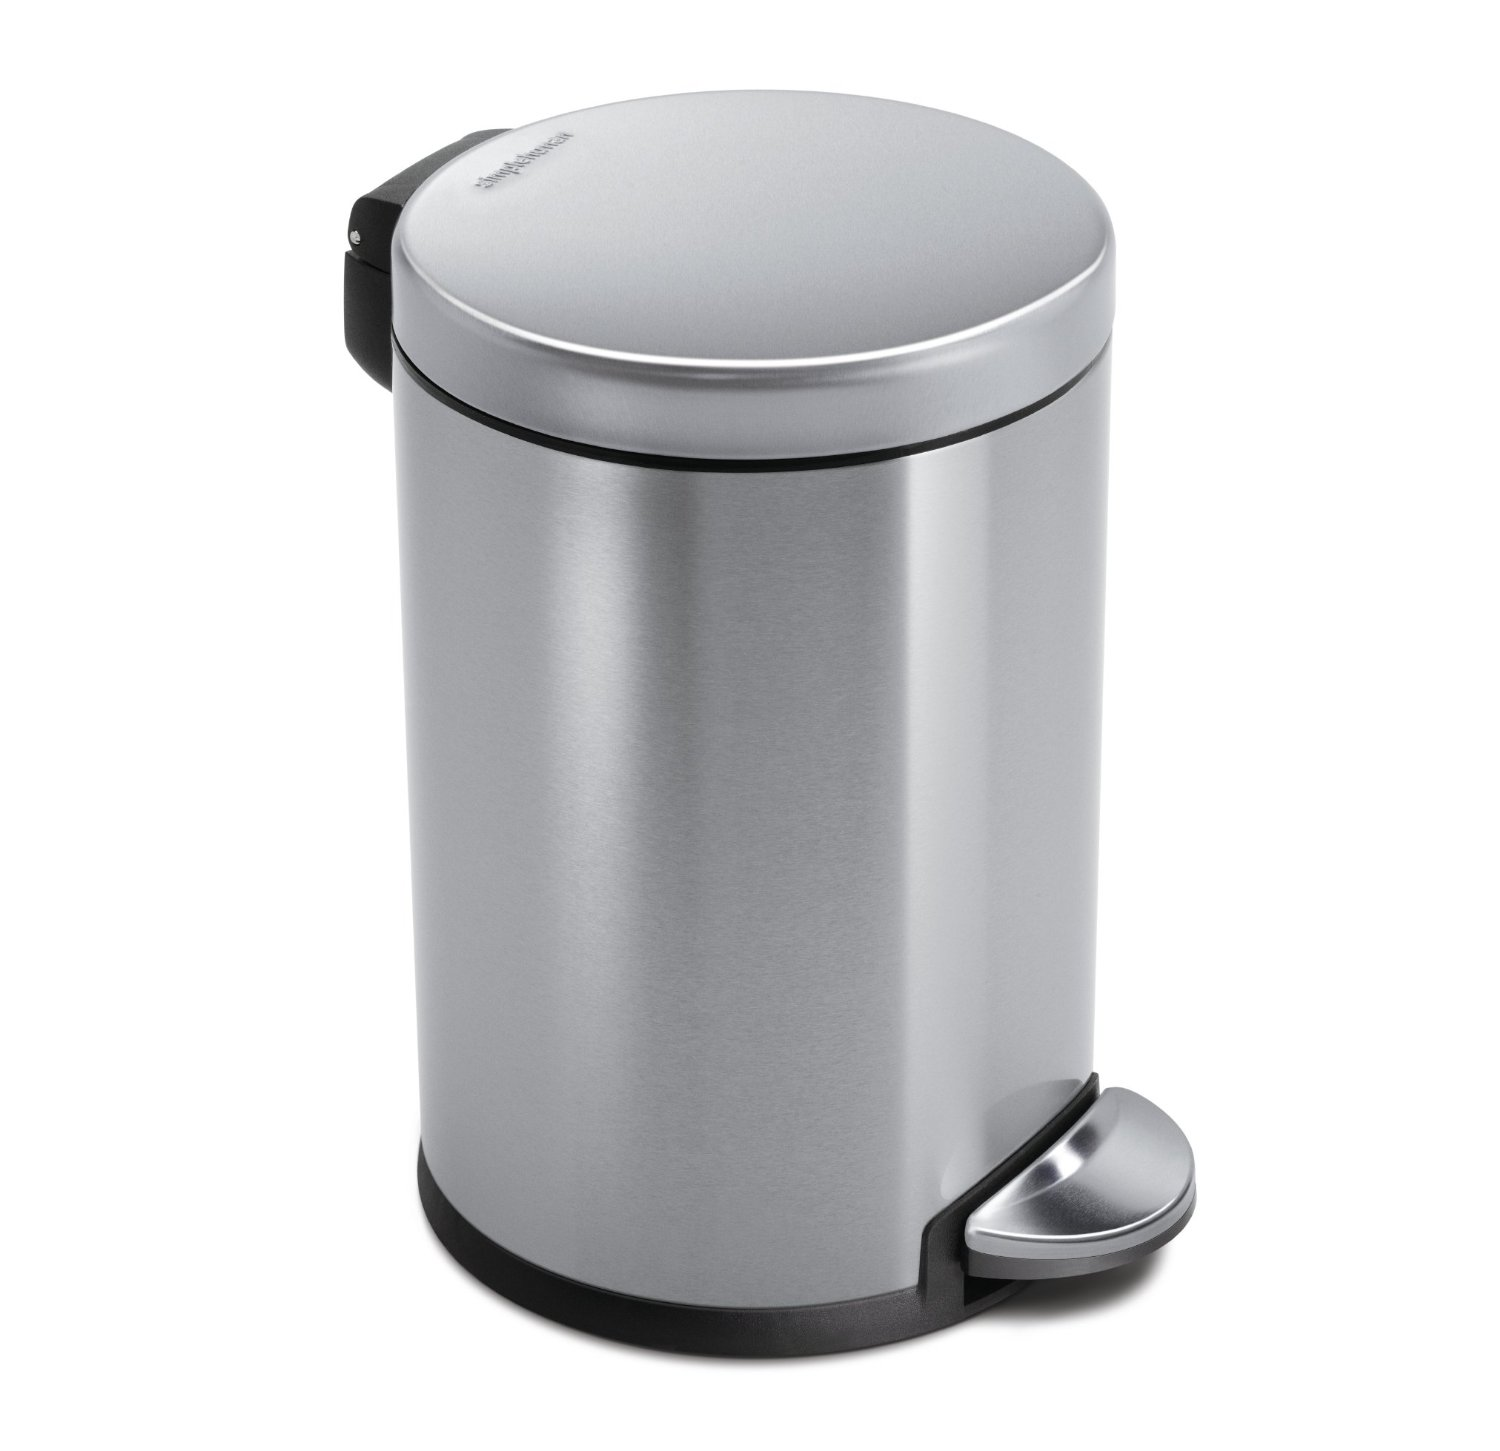 kitchen trash bin farmhouse faucet best can reviews of 2019 at topproducts com simplehuman 4 5 l 1 2 gal mini round step stainless steel available sink